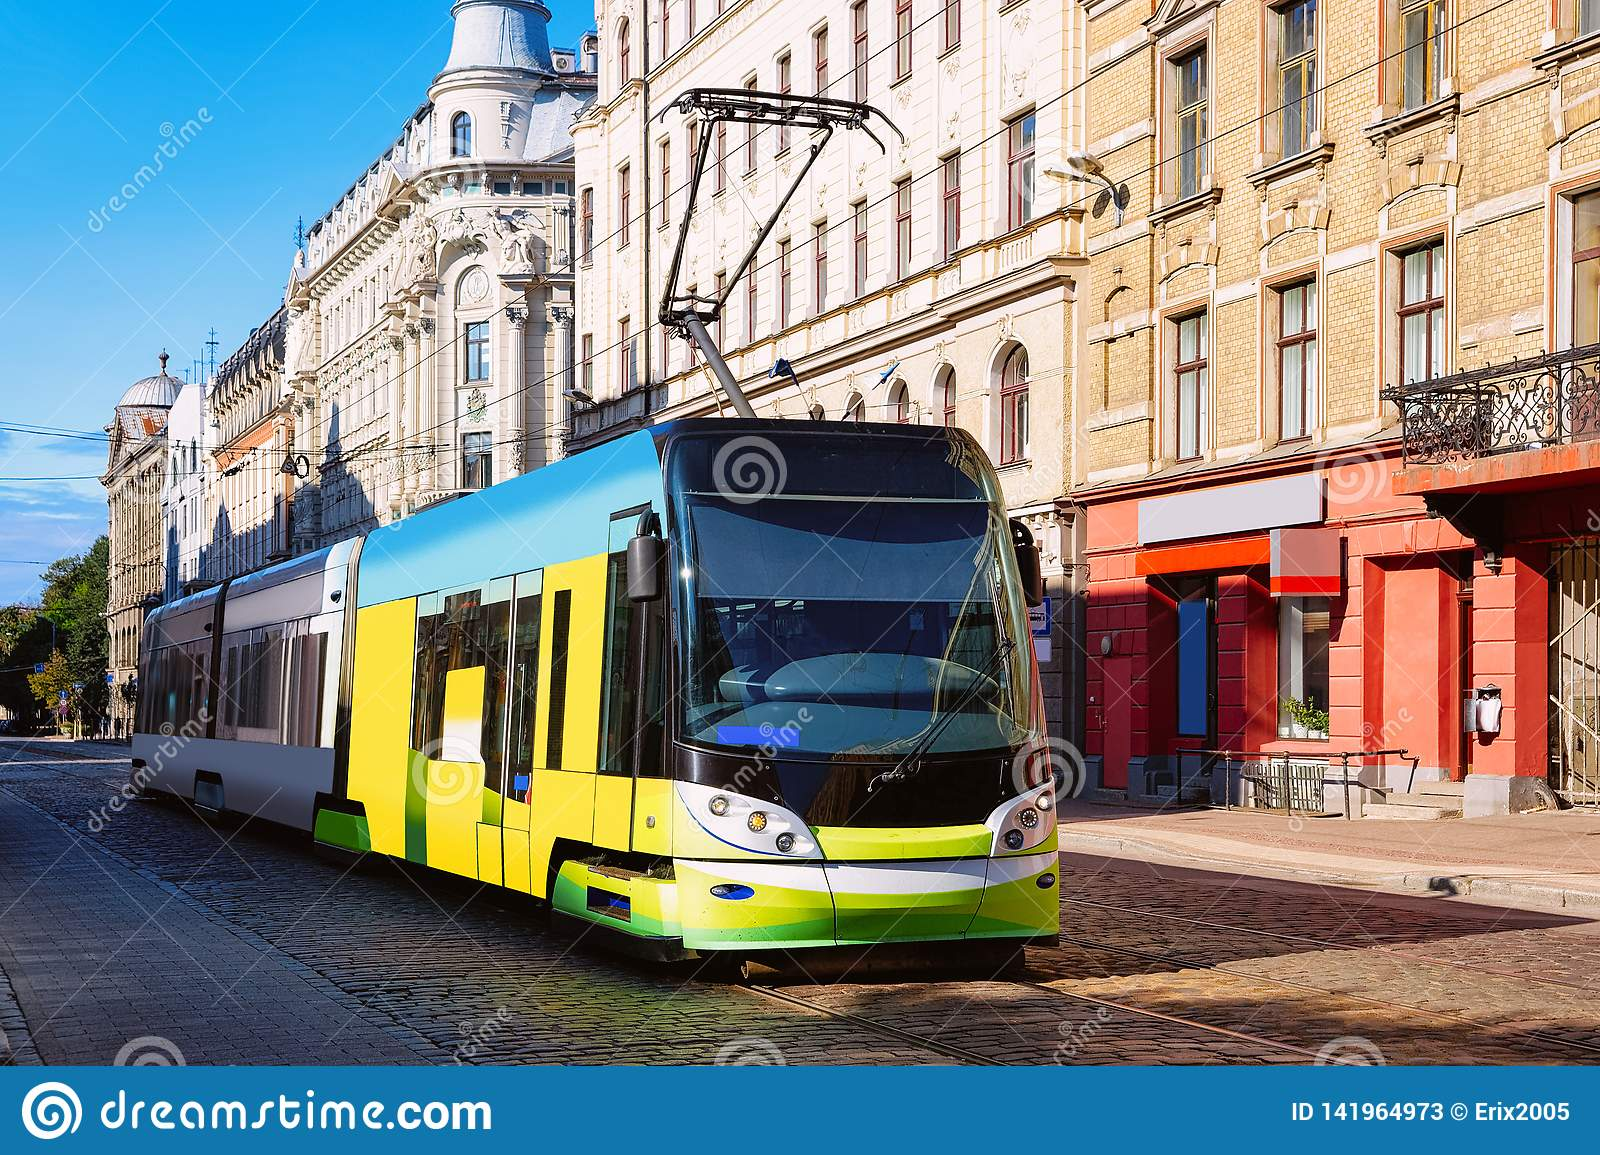 Tram in street of Riga in Latvia